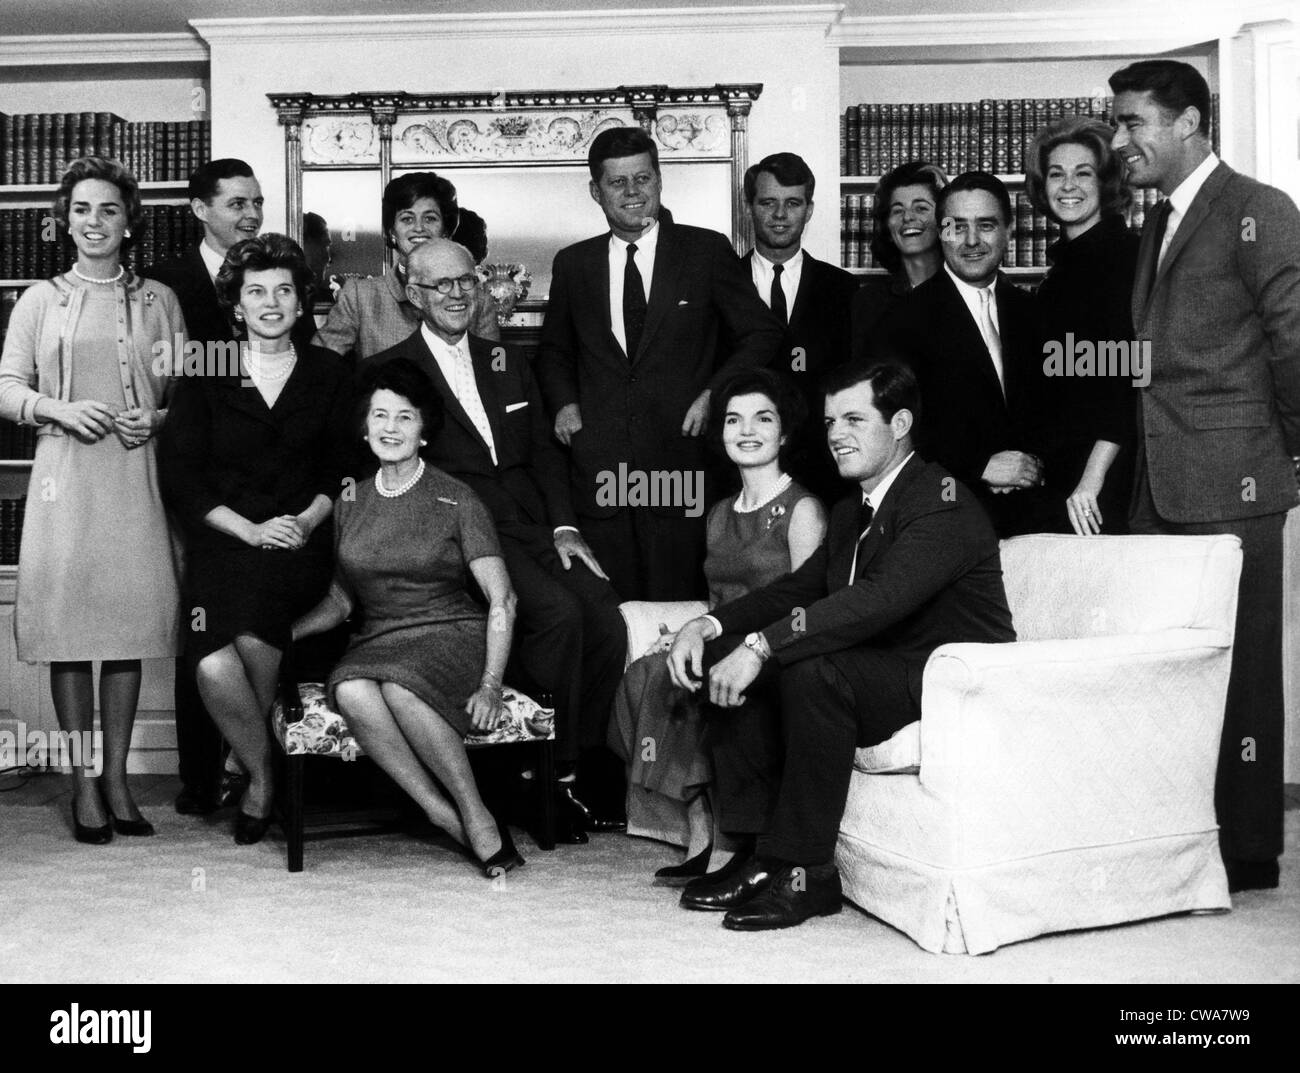 President-Elect John F. Kennedy (center, standing) with members of his family, Massachusetts, November 13, 1964.. - Stock Image